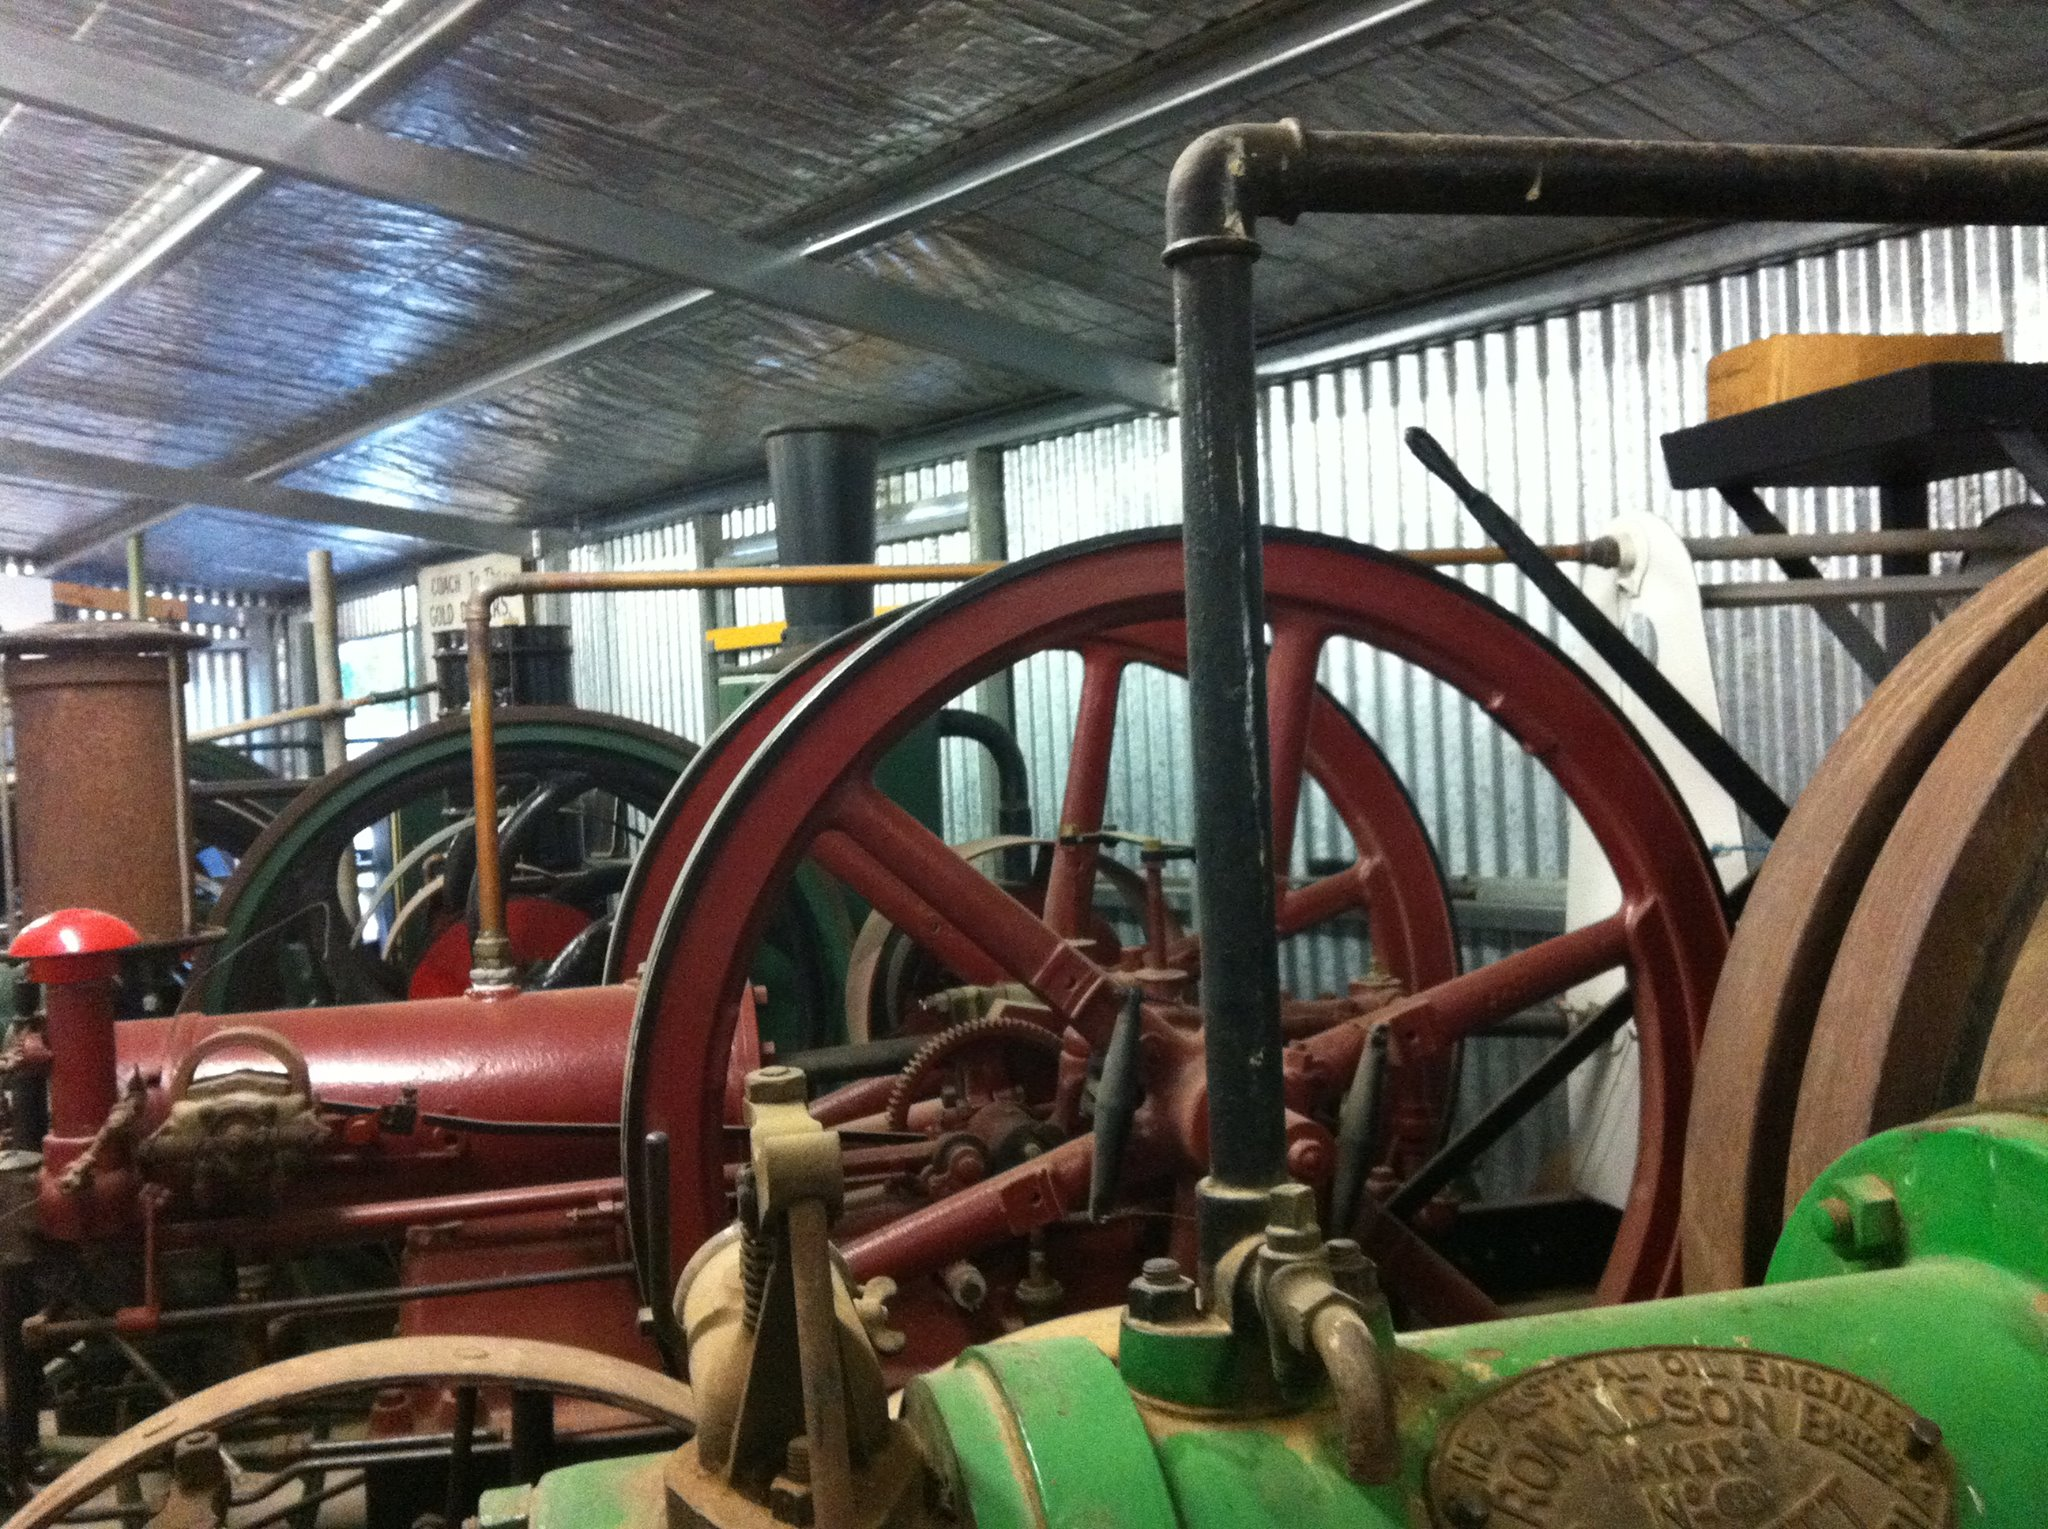 If you're into machines and how they work then the  Maldon Vintage Machinery Museum  is for you.  Featuring steam engines and generators from the 1870's.  If you're not convinced this is for you, check out the  reviews here on TripAdvisor . Click the image above for more information.